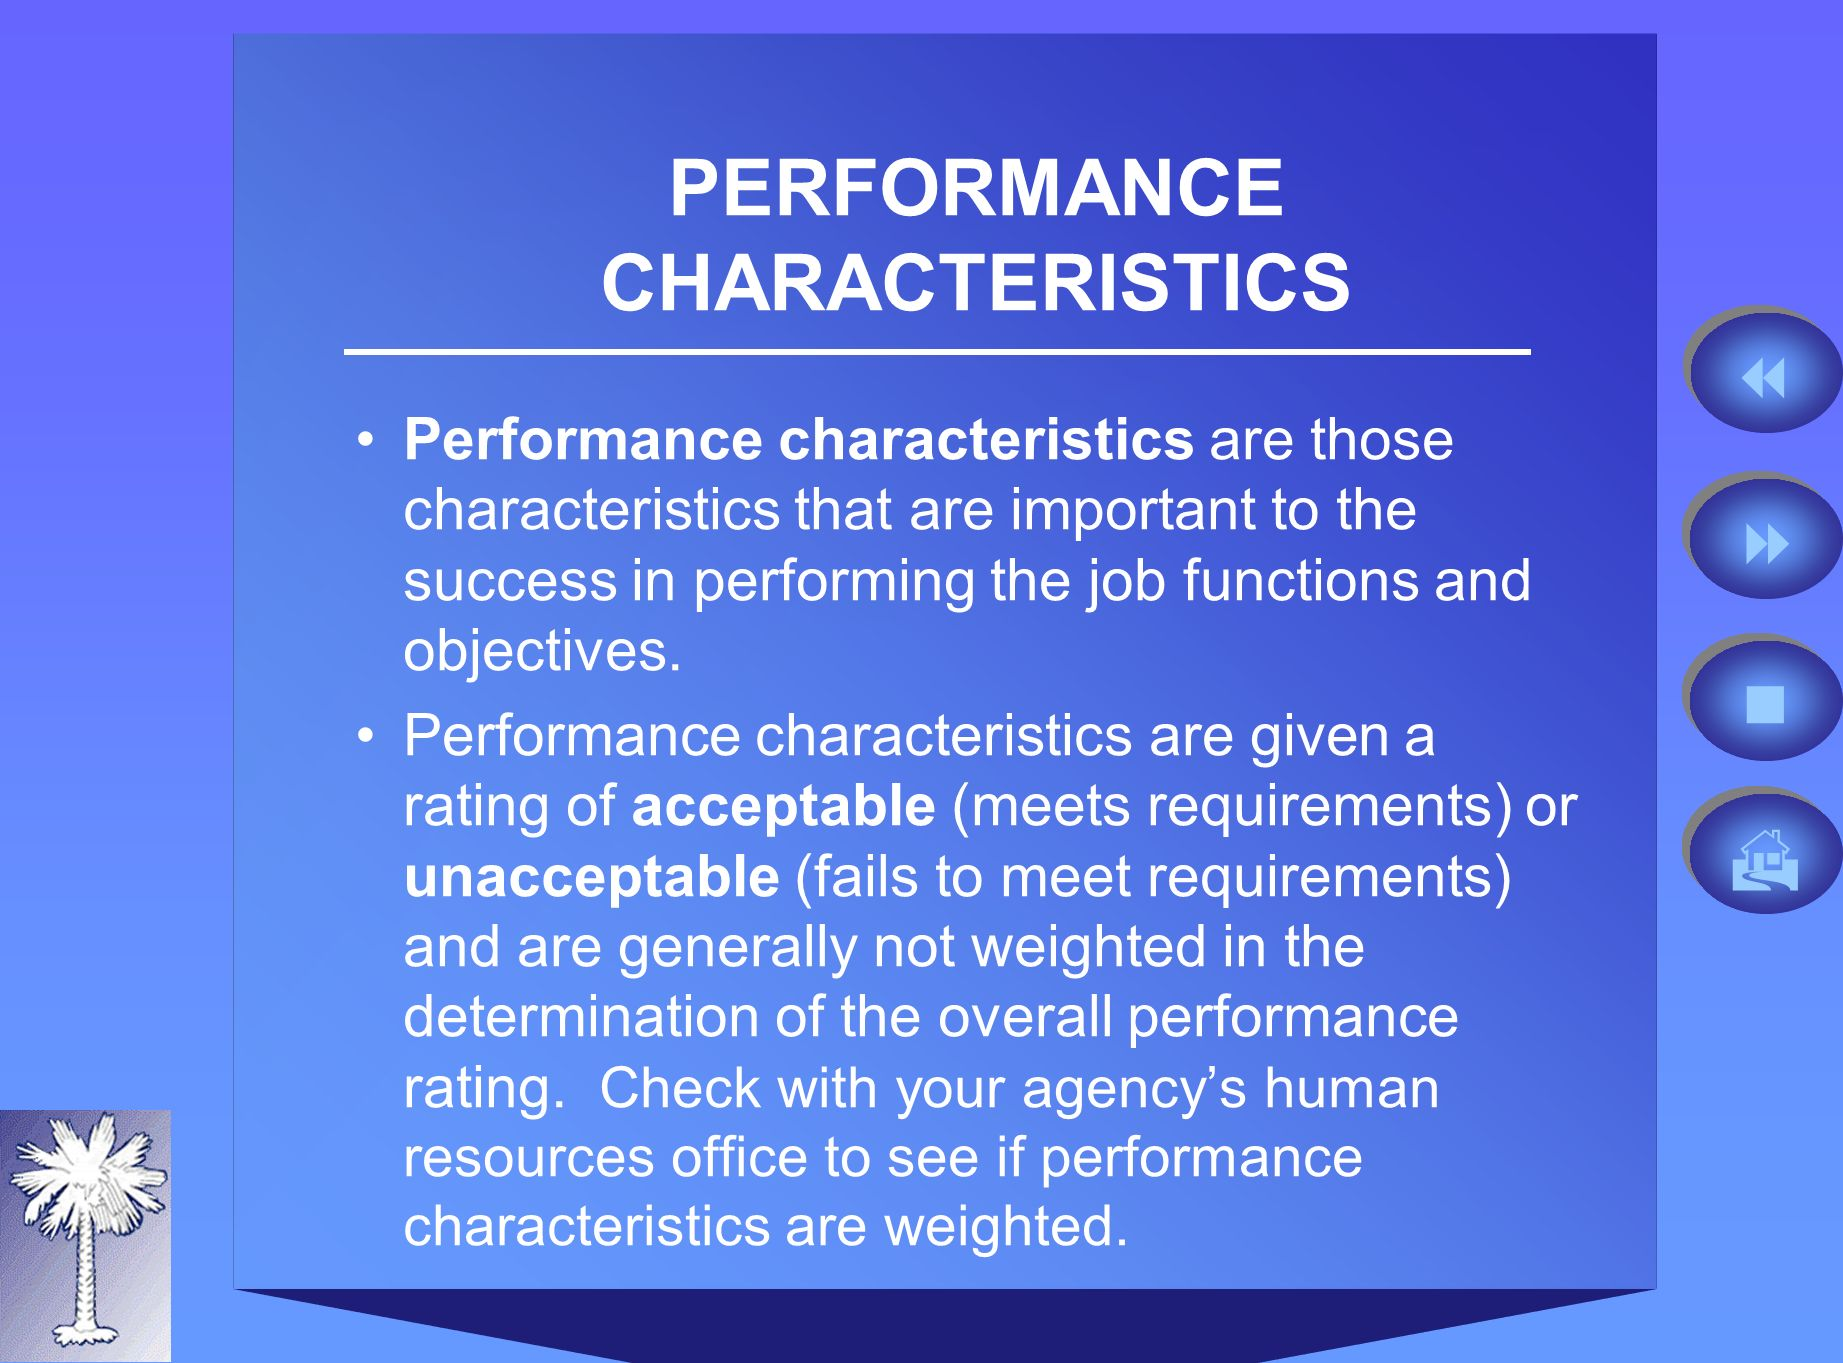 Performance characteristics are those characteristics that are important to the success in performing the job functions and objectives.